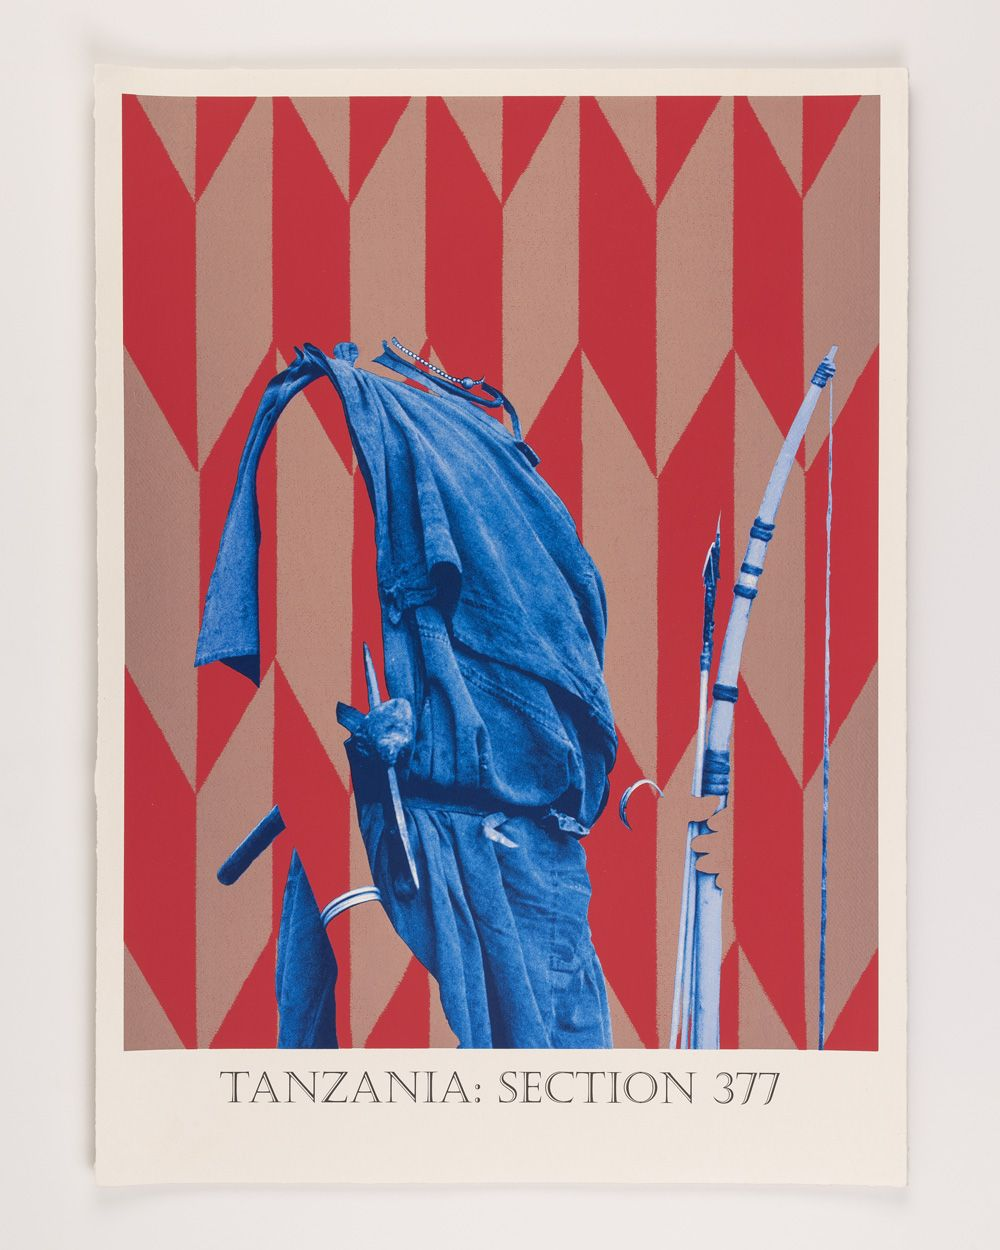 Tanzania: Section 377 - 5 colour screen print on handmade Indian Khadi cotton rag paper.  Signed and numbered Limited edition of 20  'Recording the invisible in Matt Smith's photographic re-enactments' Cecilia Jardemar   These prints were developed for the exhibition 'Losing Venus' at the Pitt Rivers Museum in Oxford. Each print is based on a photograph from the museum's collection. Each photograph was taken in a country where the British imposed or maintained homophobic legislation. Drawing on